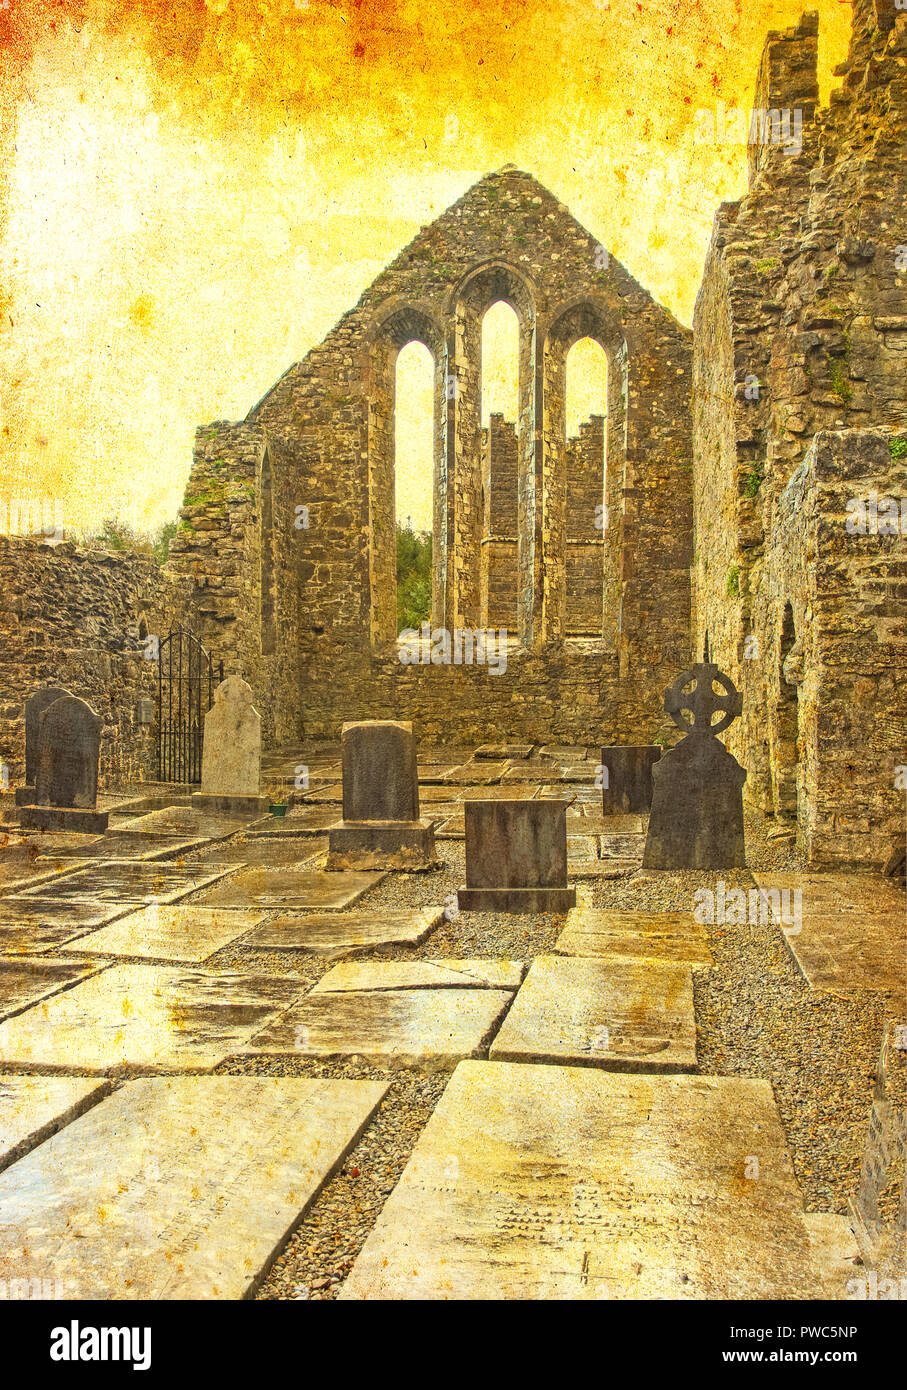 A textured scene of Cong Abbey in the village of the same name straddling the County Galway and County Mayo borders in Ireland. Stock Photo